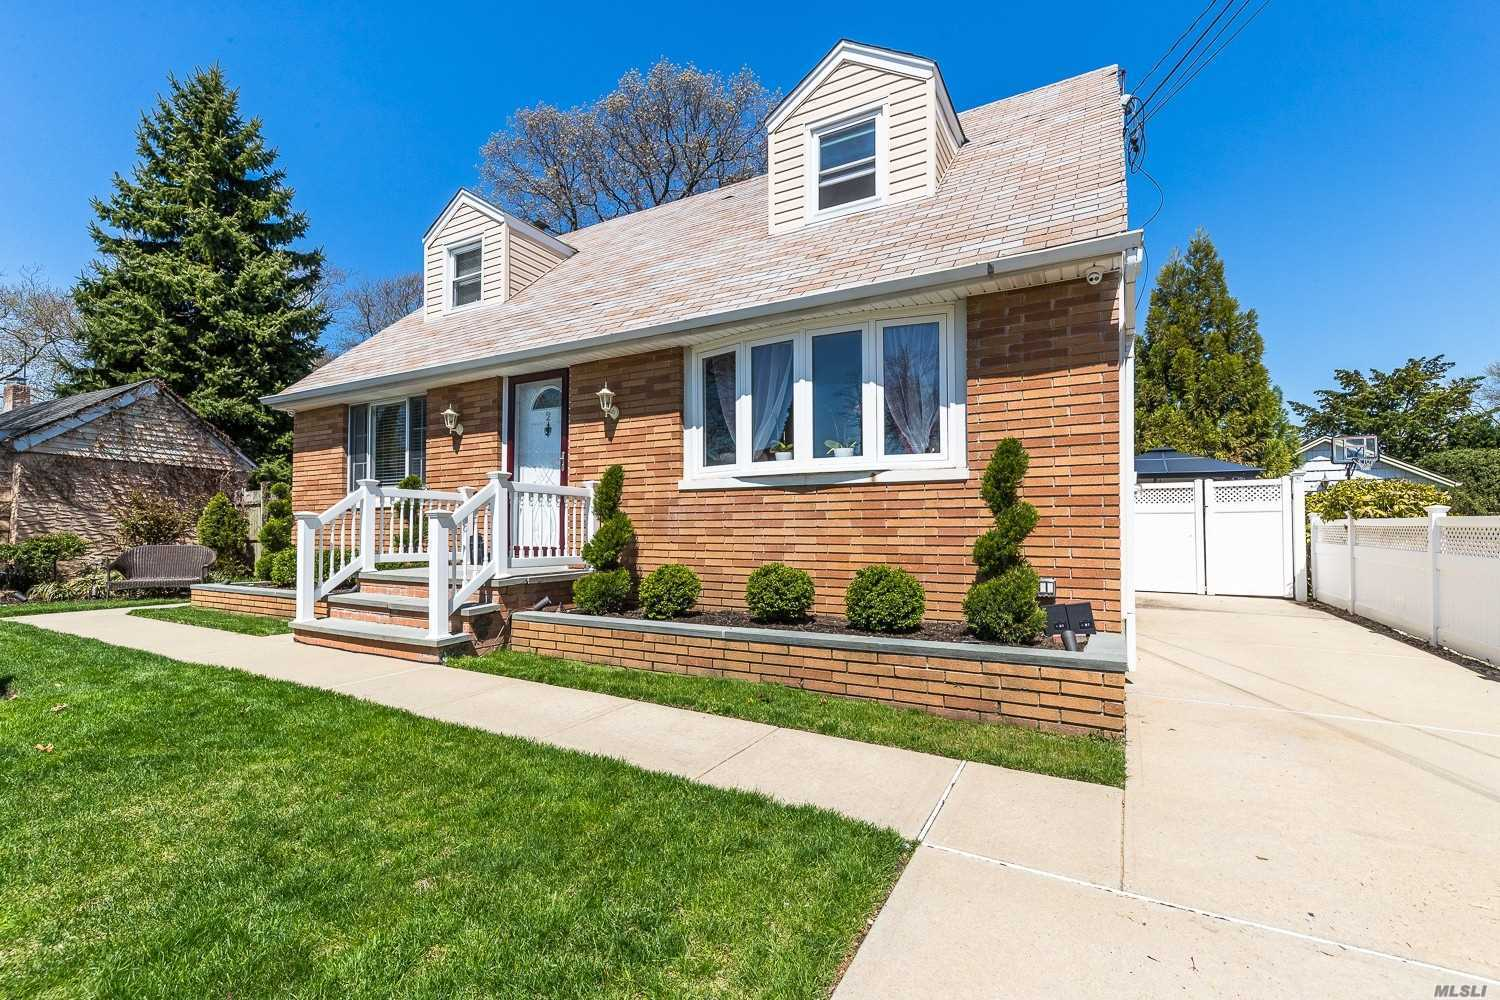 Move in ready 4 bedroom cape with updated kitchen and appliances. Beautiful hardwood floors. Manicured landscaping. 7 ft. deep, heated in-ground pool. A must see!